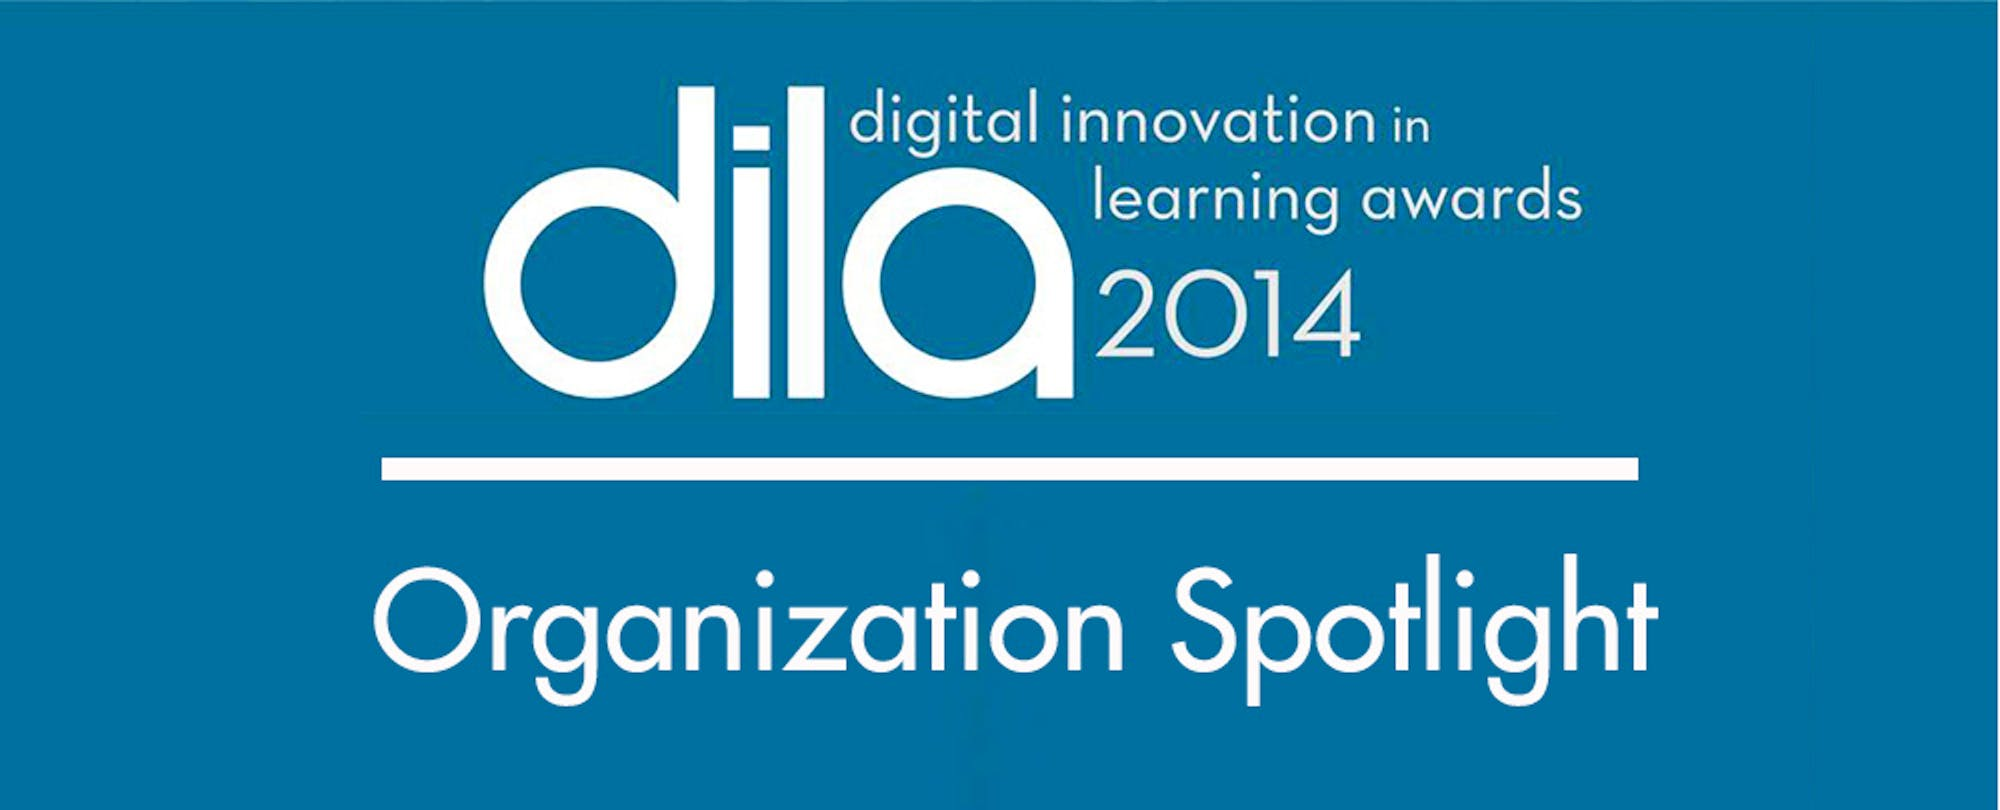 Users, Data & Research: What We Can All Learn from the DILA Organization Winners